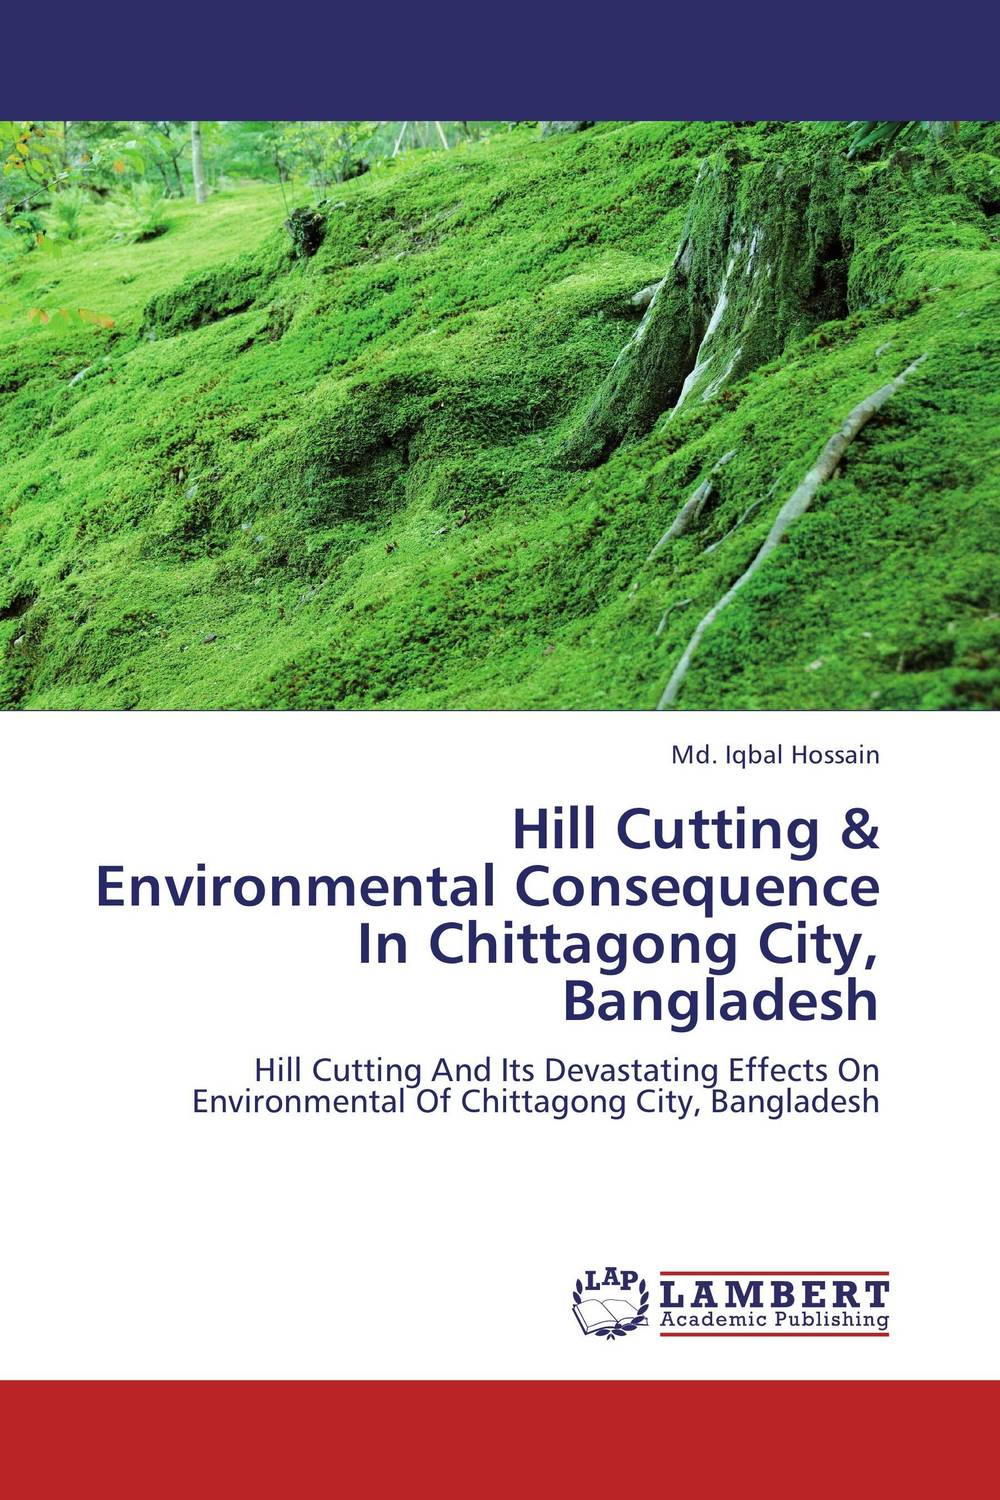 Hill Cutting & Environmental Consequence In Chittagong City, Bangladesh puck of pook s hill